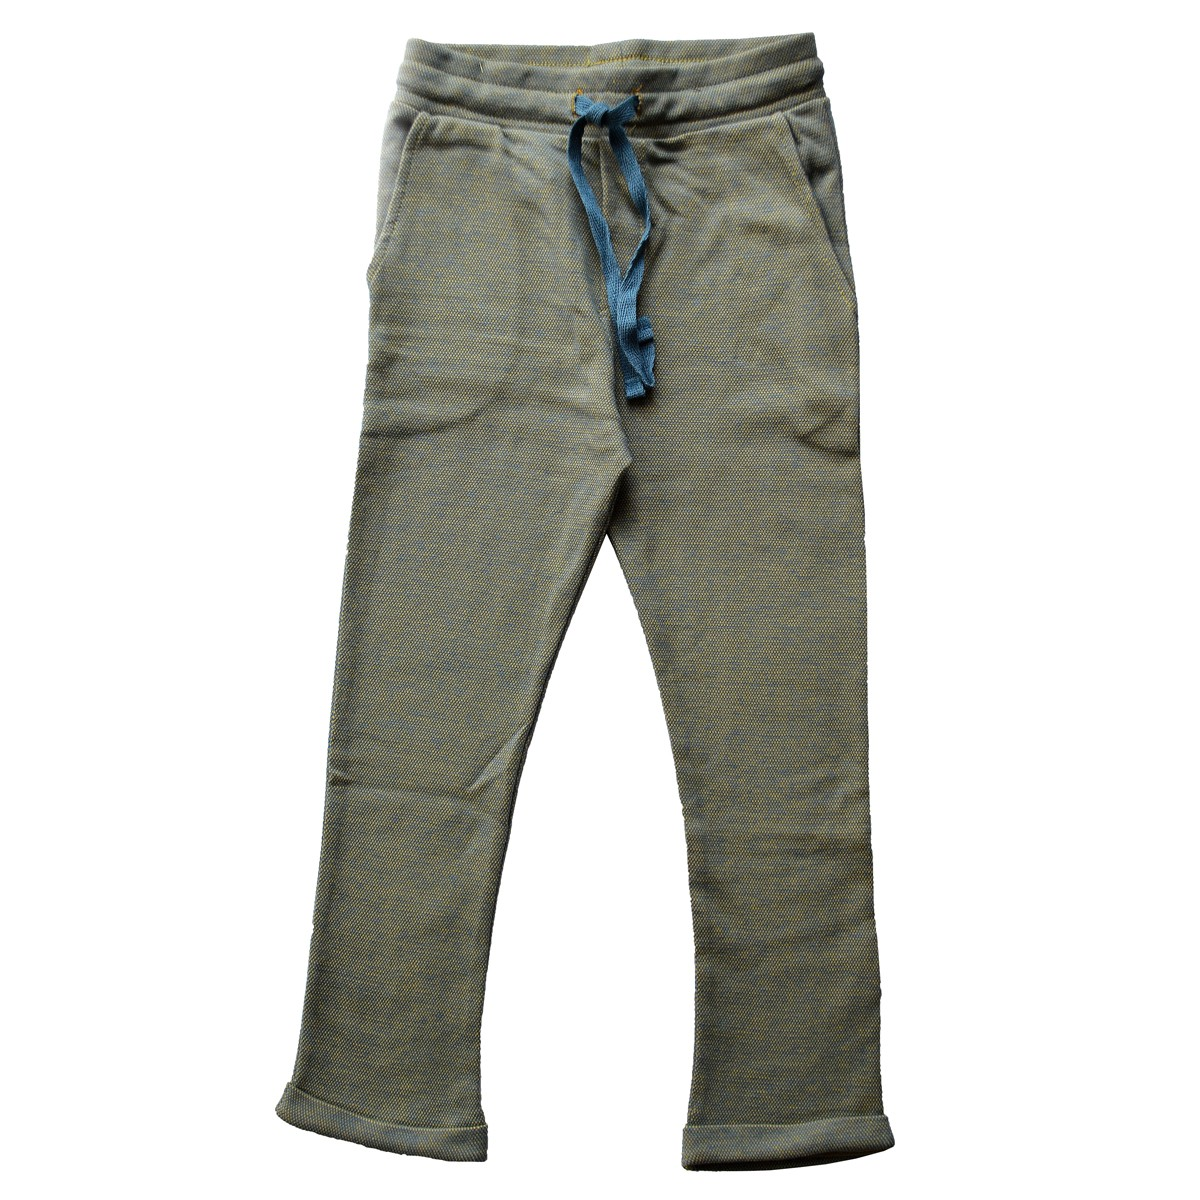 Chino pants blue pique